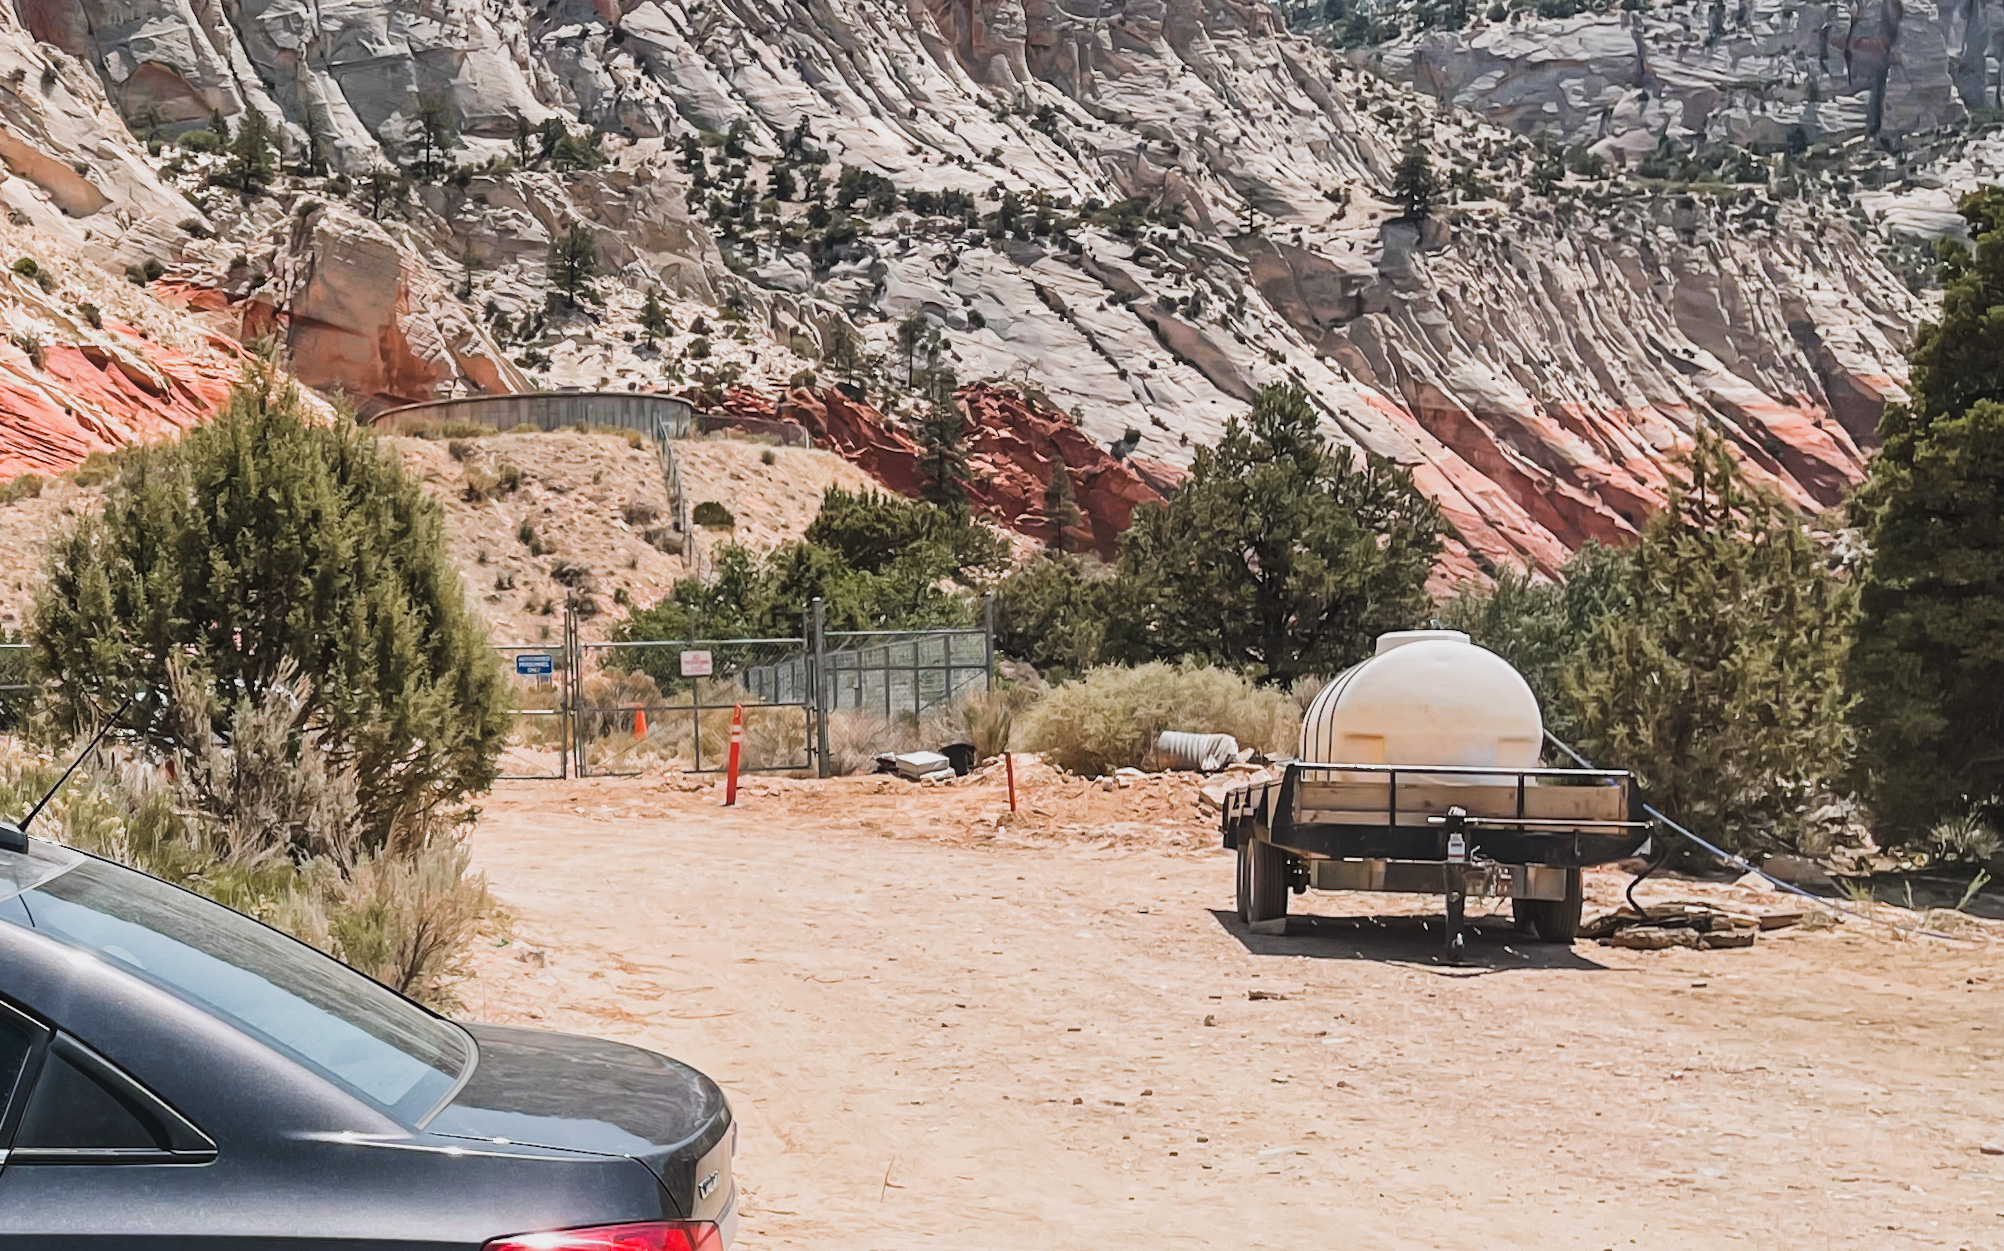 parking area of red hollow slot canyon